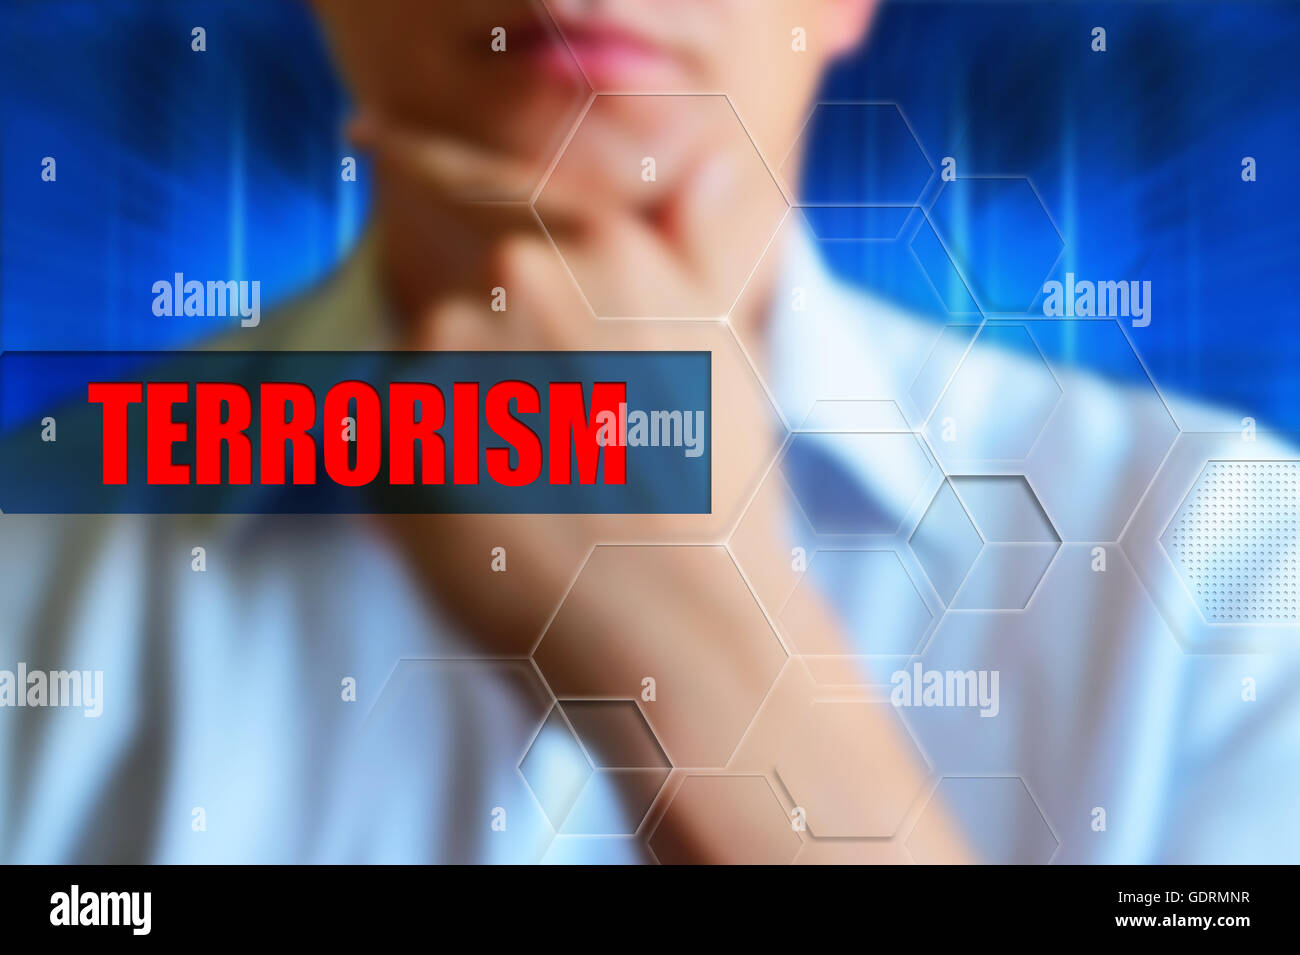 Terrorism abstract - Stock Image